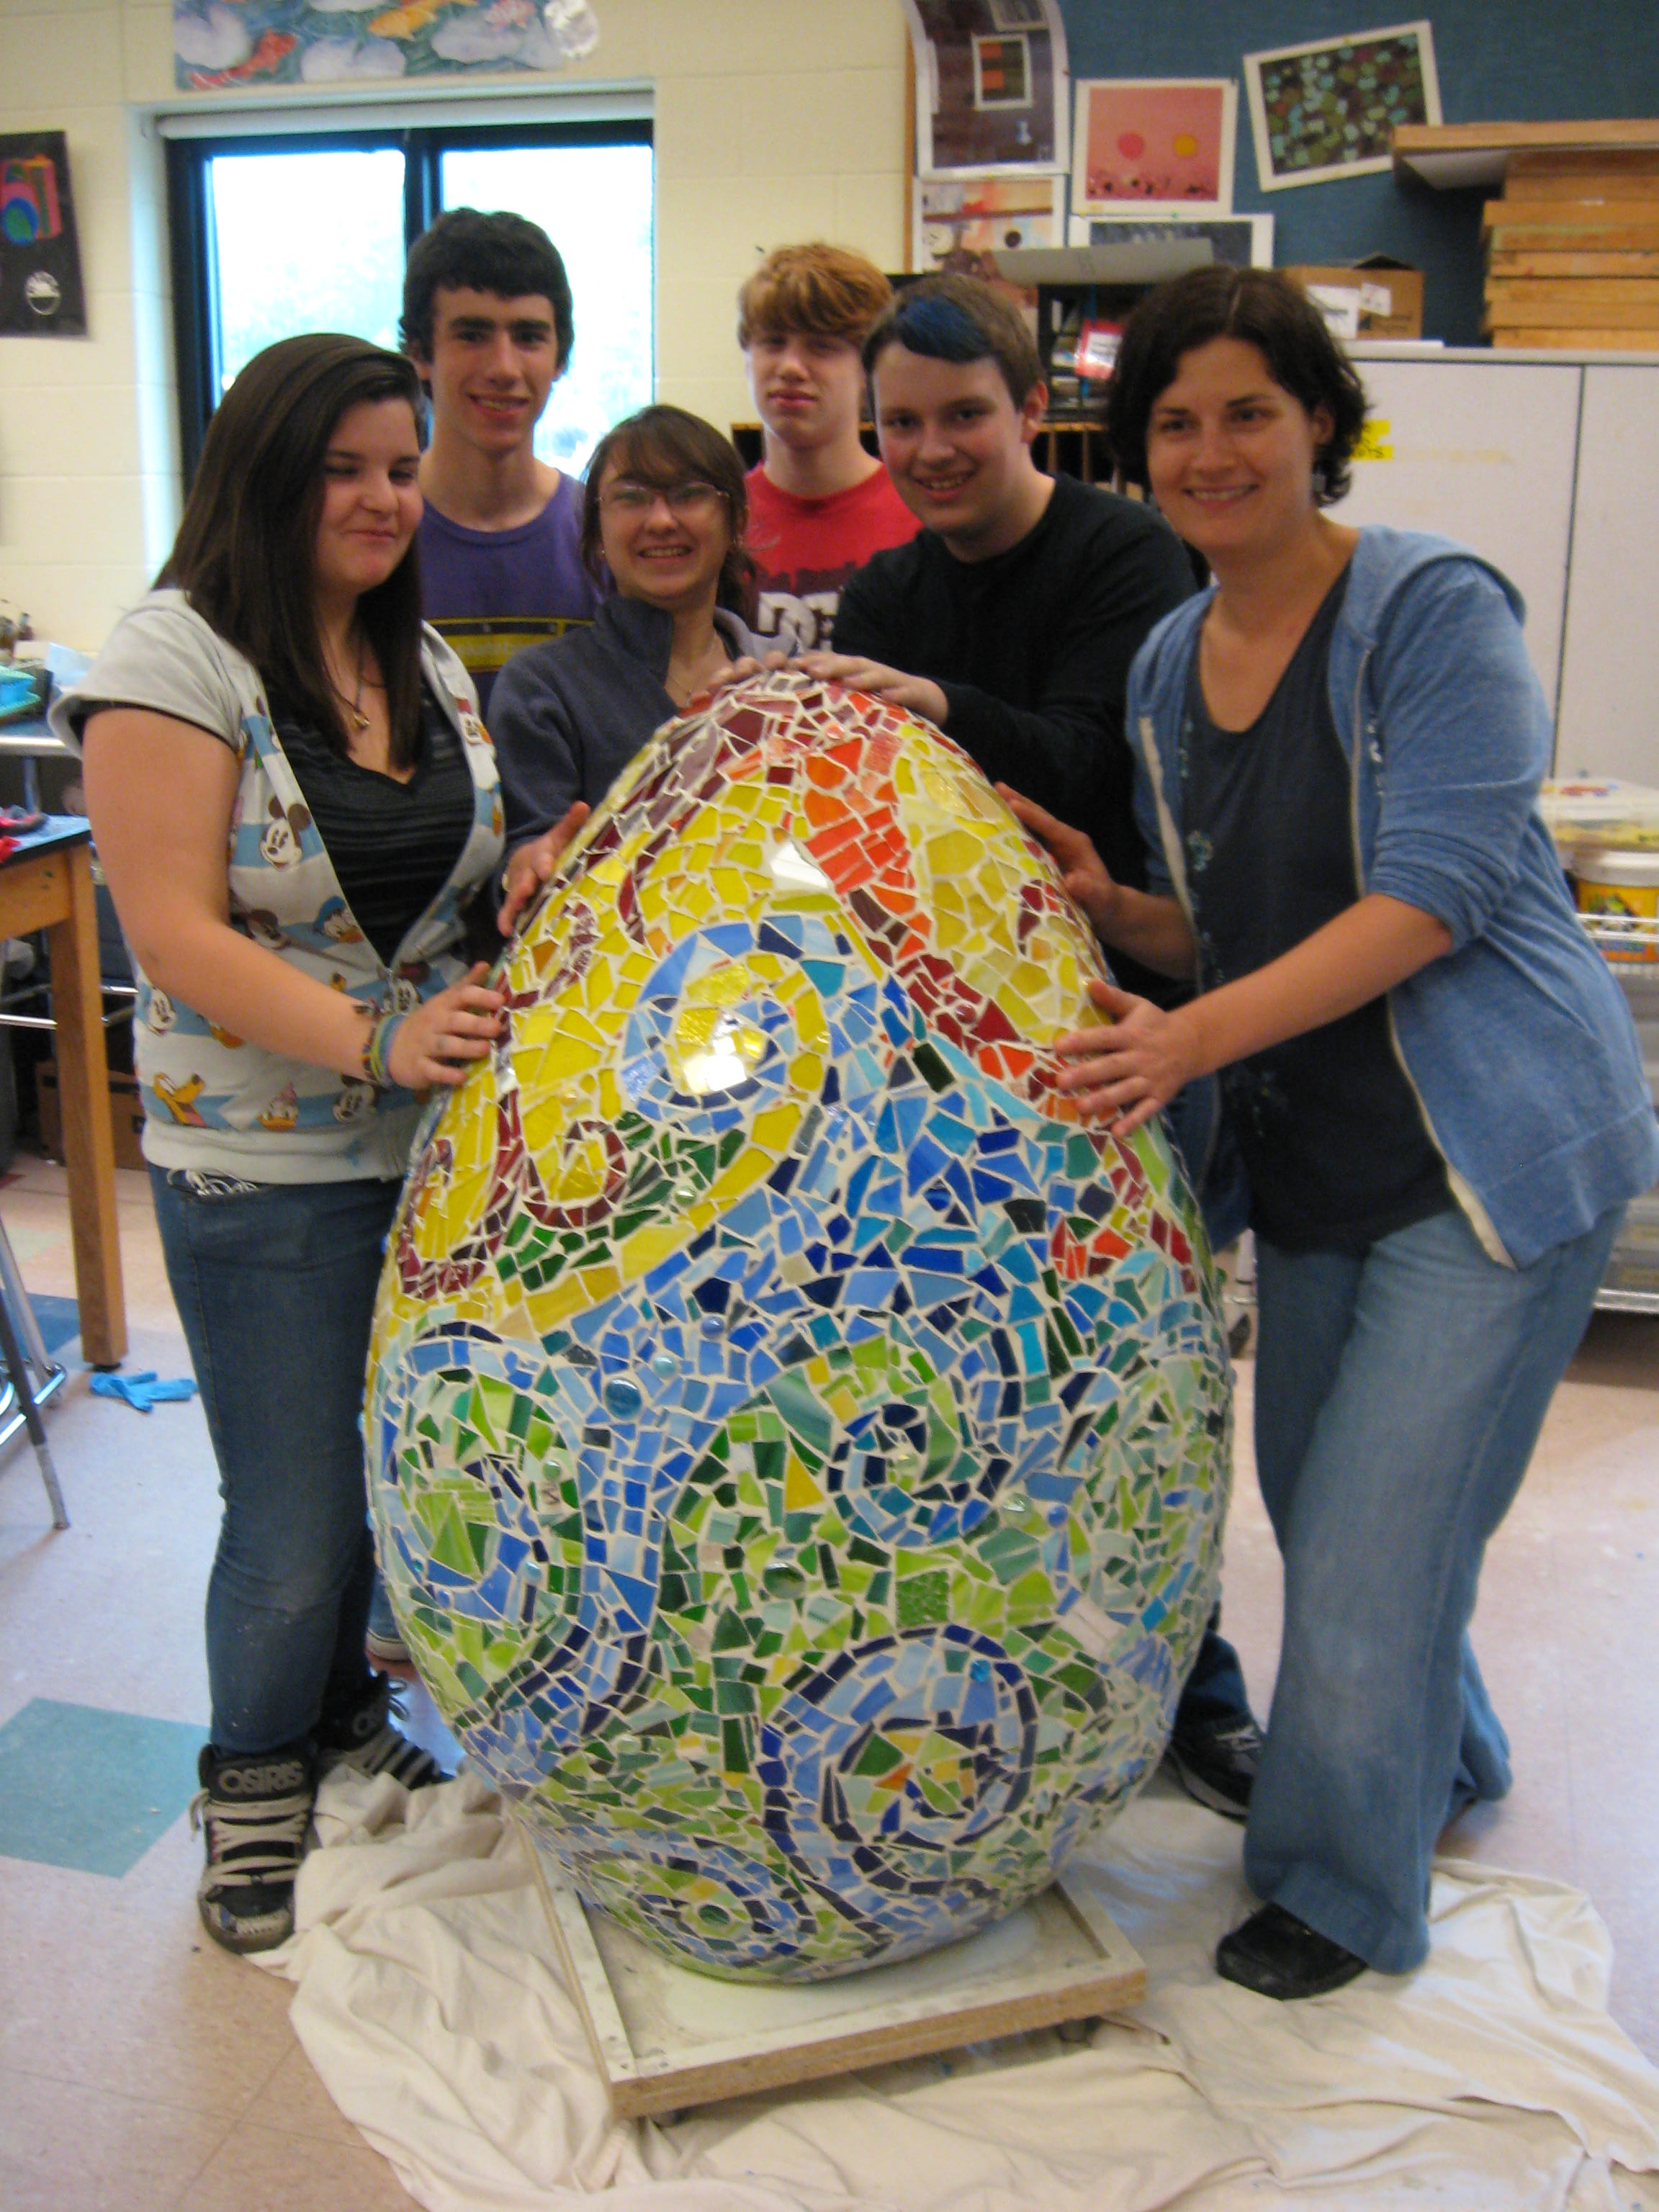 Artist Residencies And Community Mosaic Projects Welcome